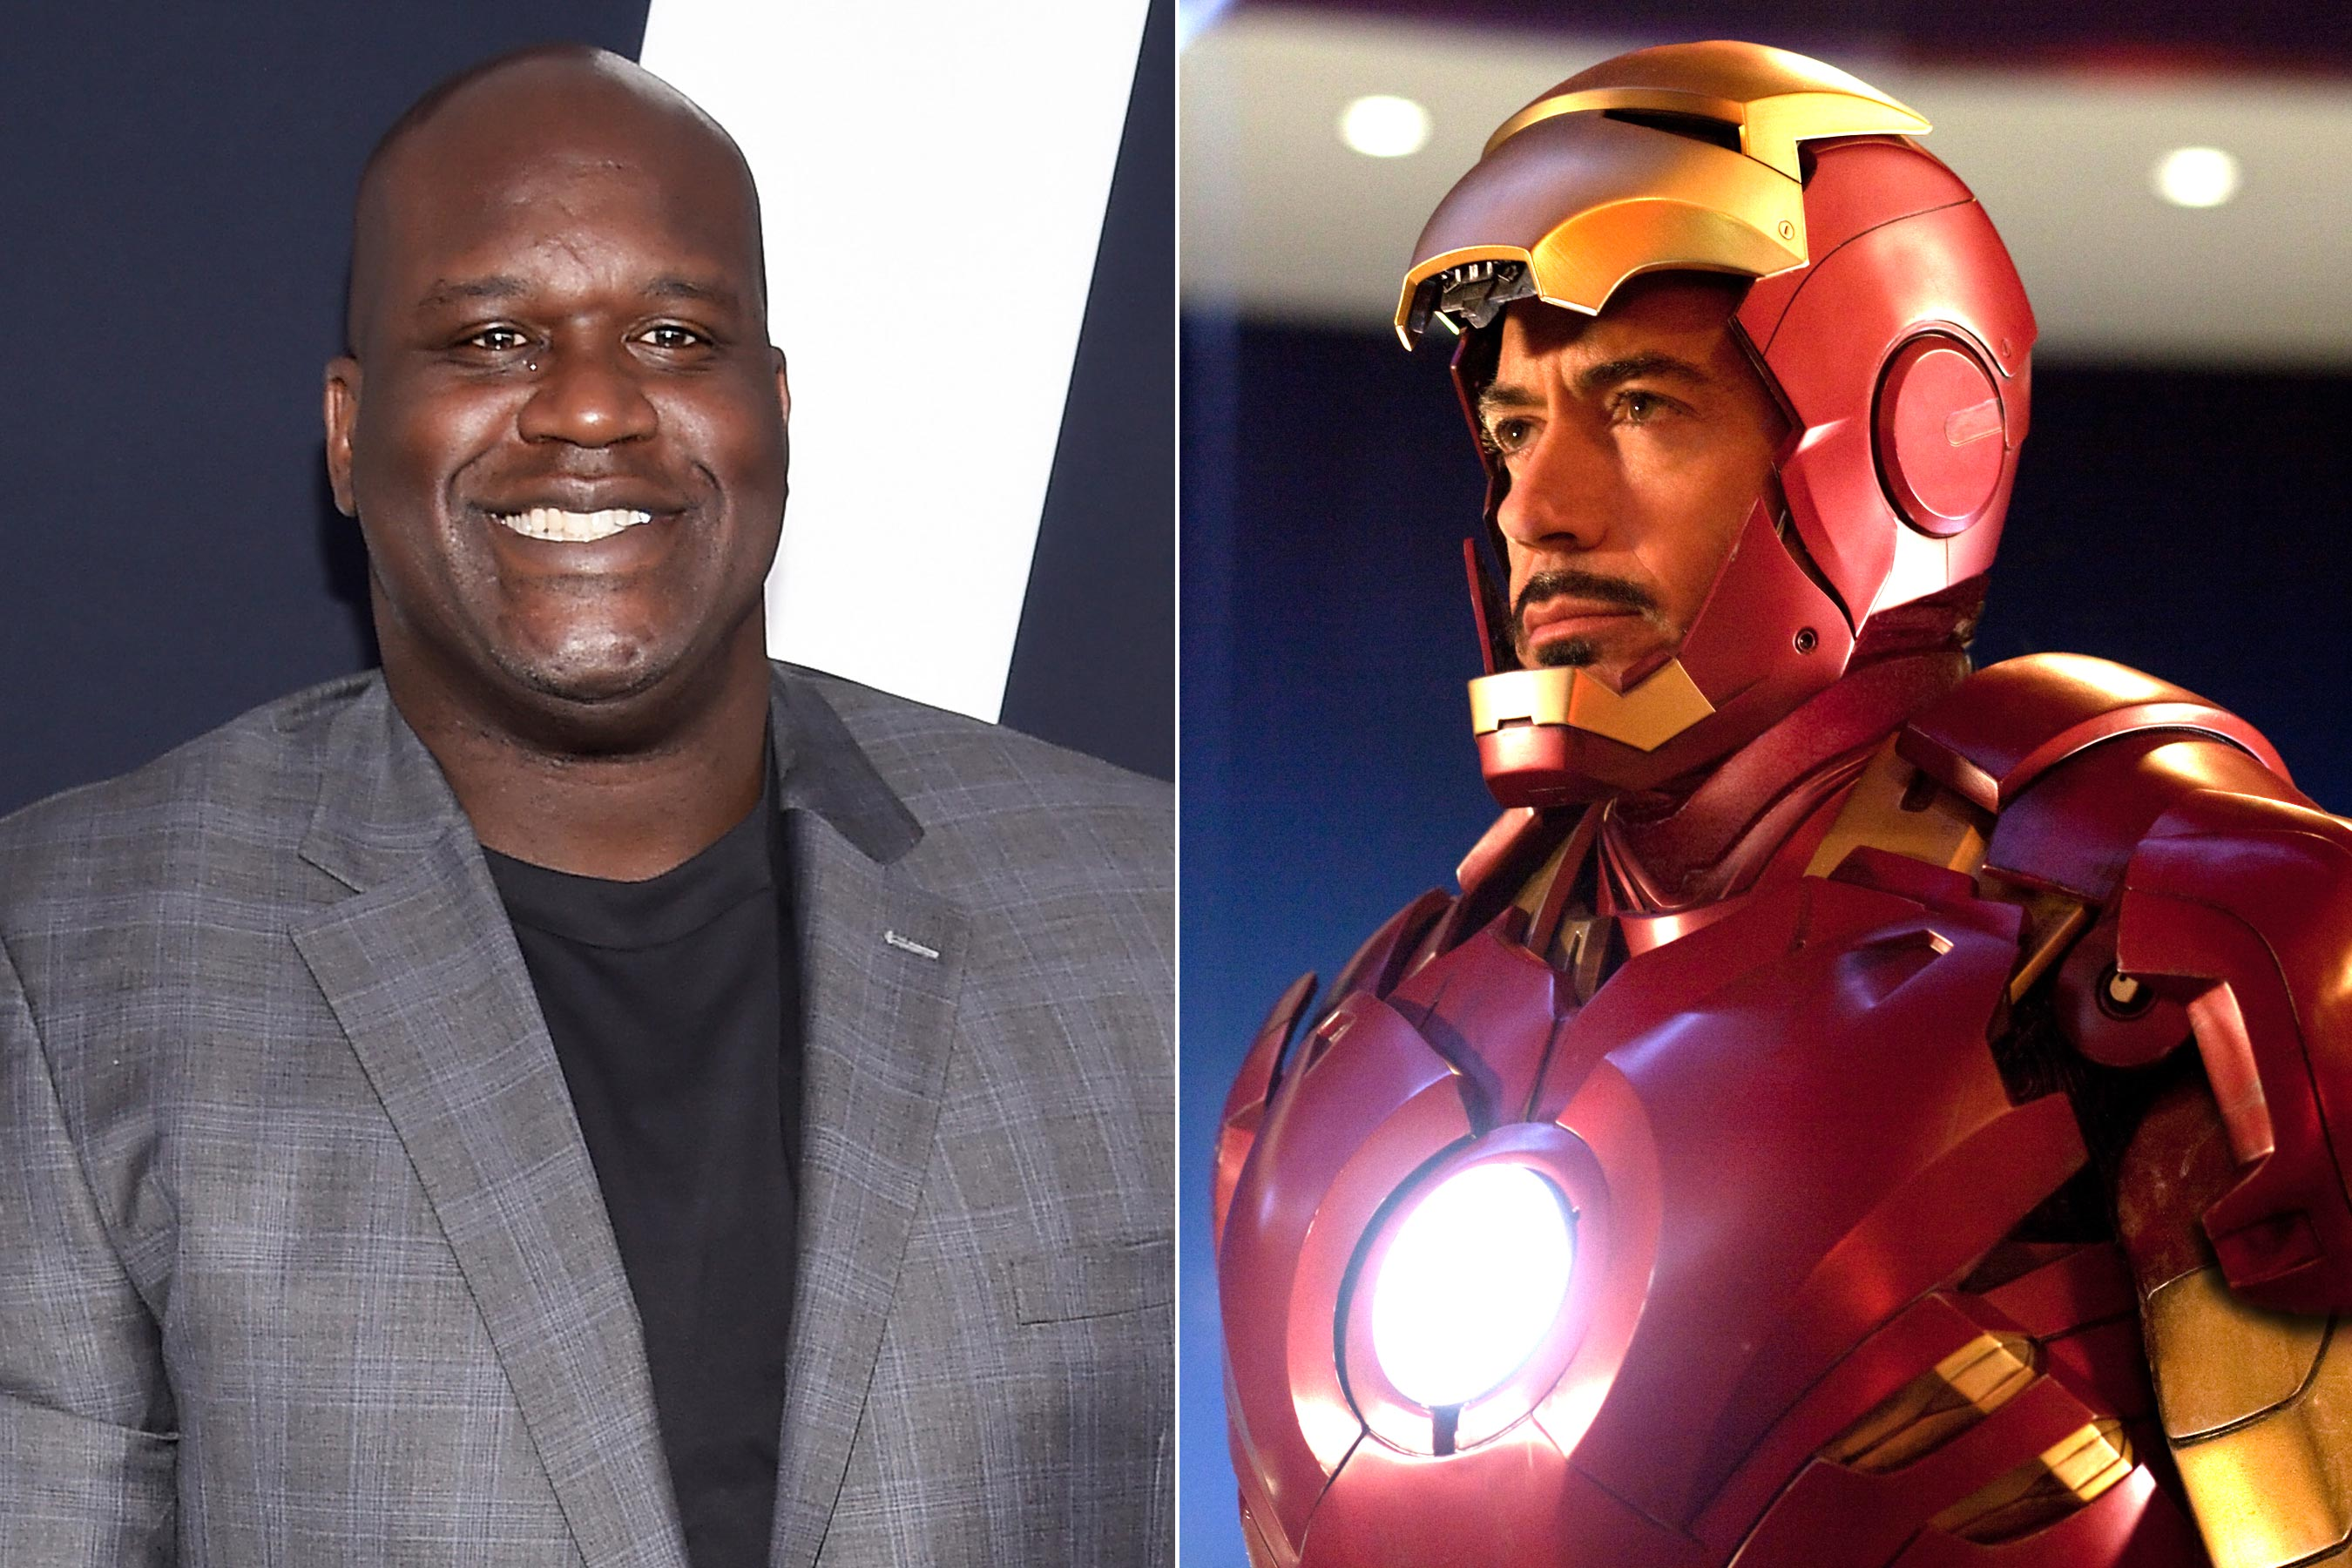 Avengers: Shaq campaigns for role